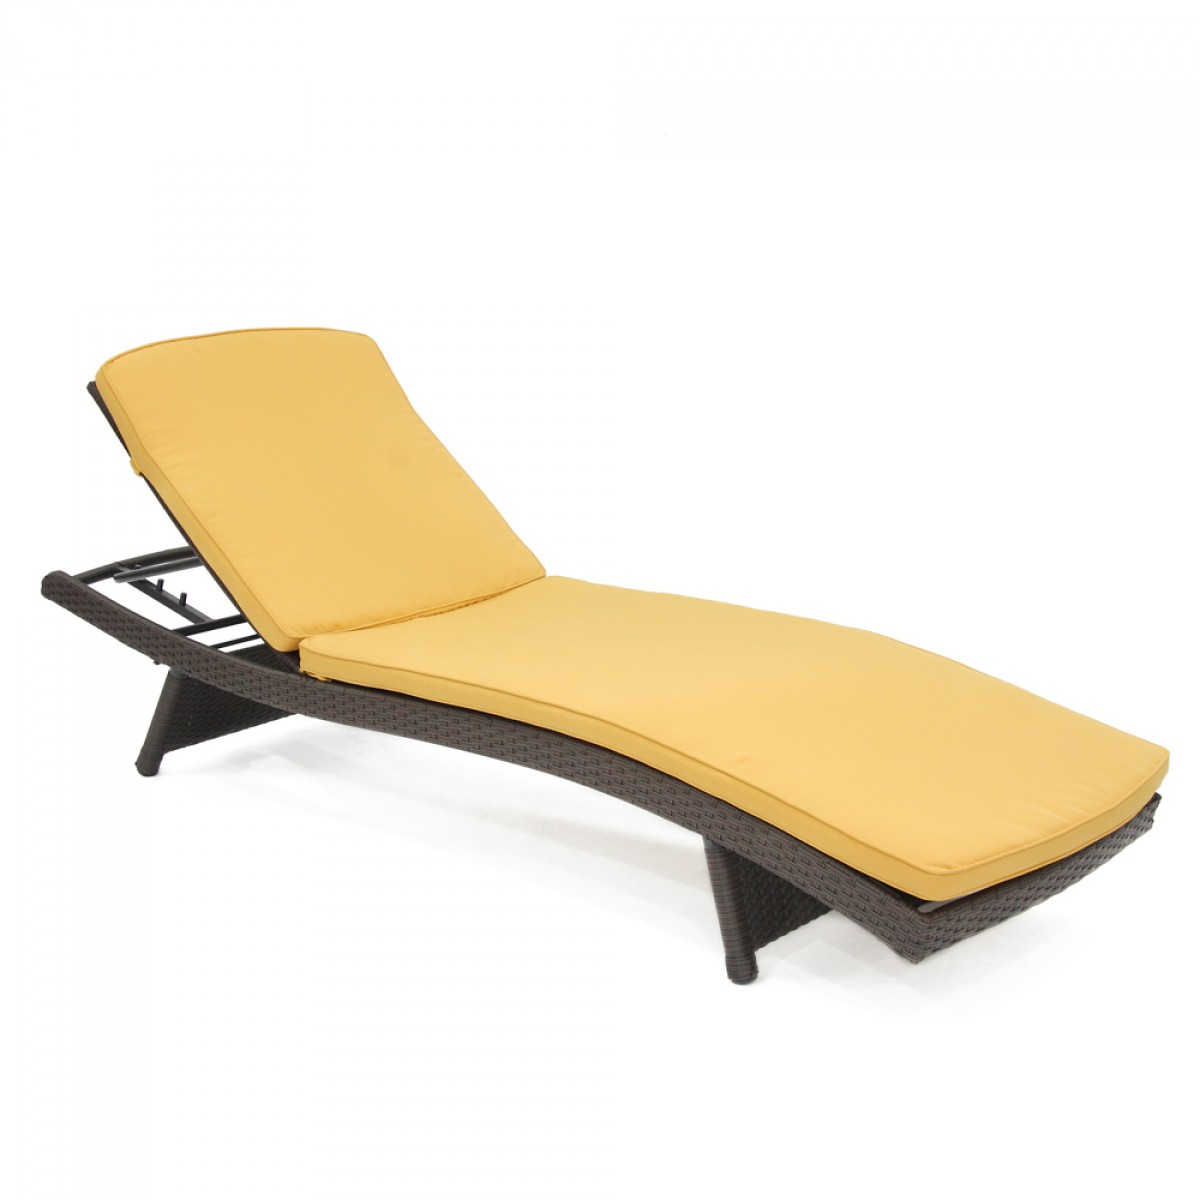 Mustard Yellow Chaise Lounger Cushion